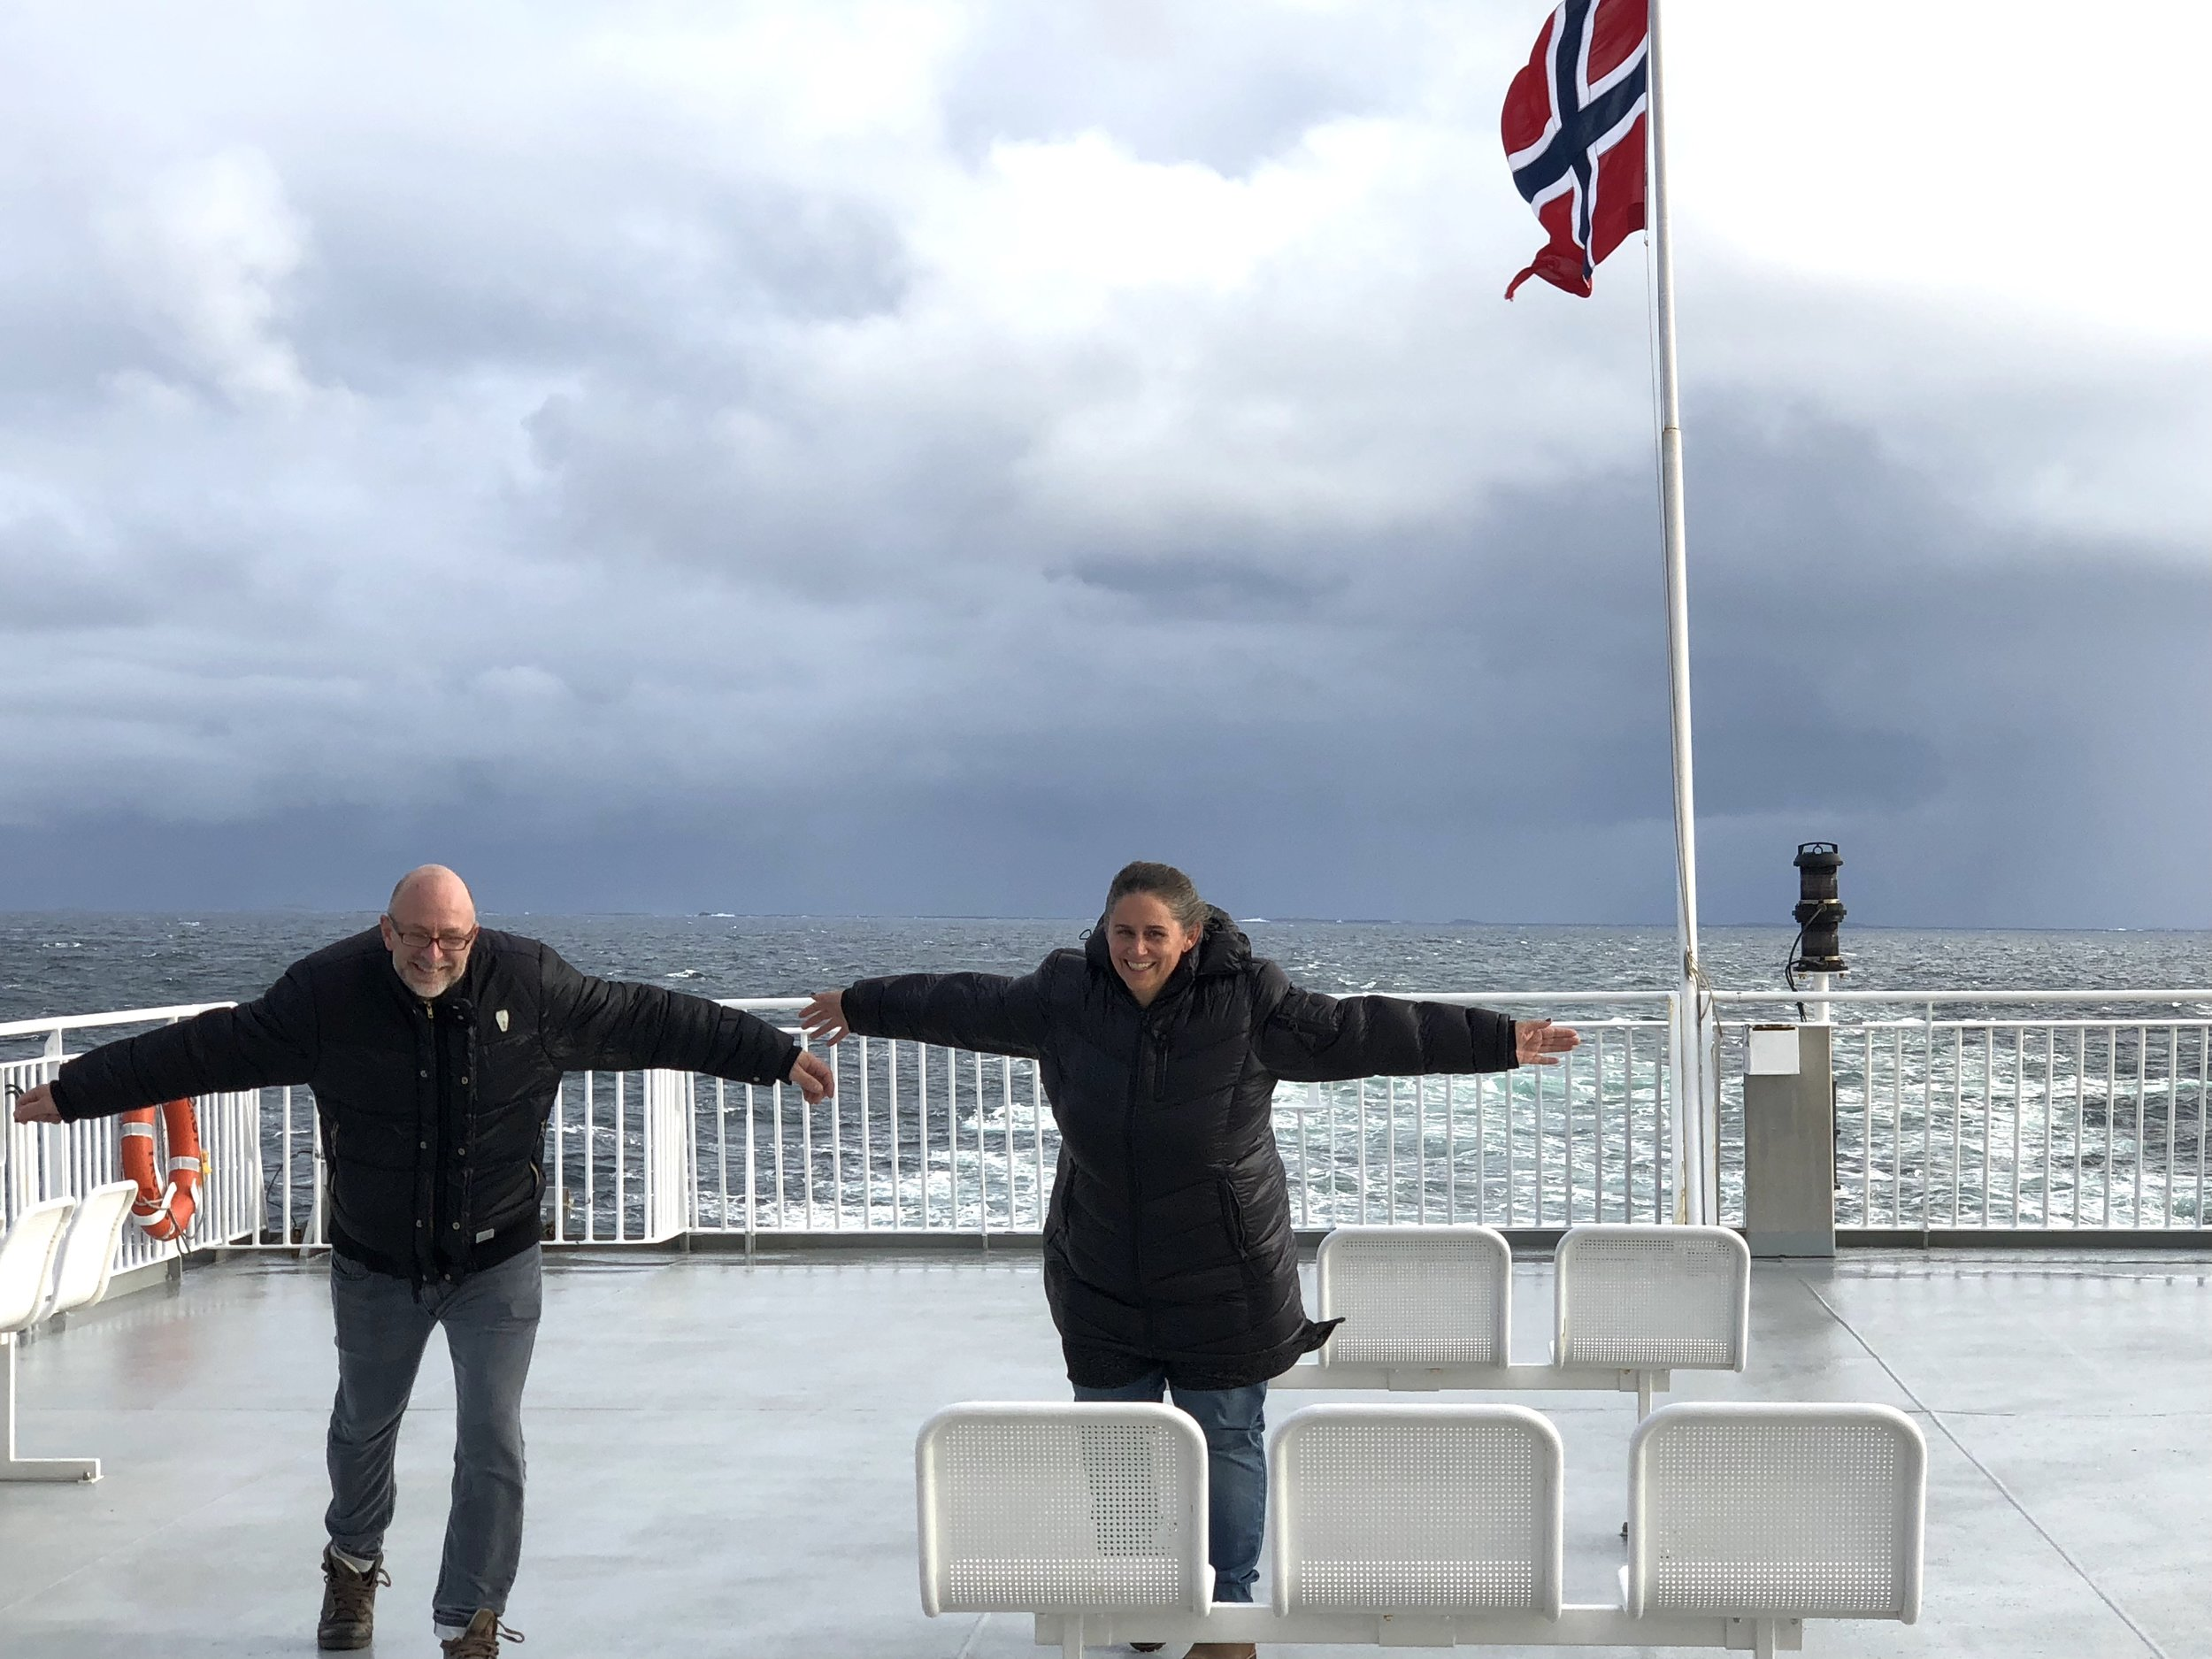 Chris and yours truly leaning into the wind on our way to Lofoten, October 2018.